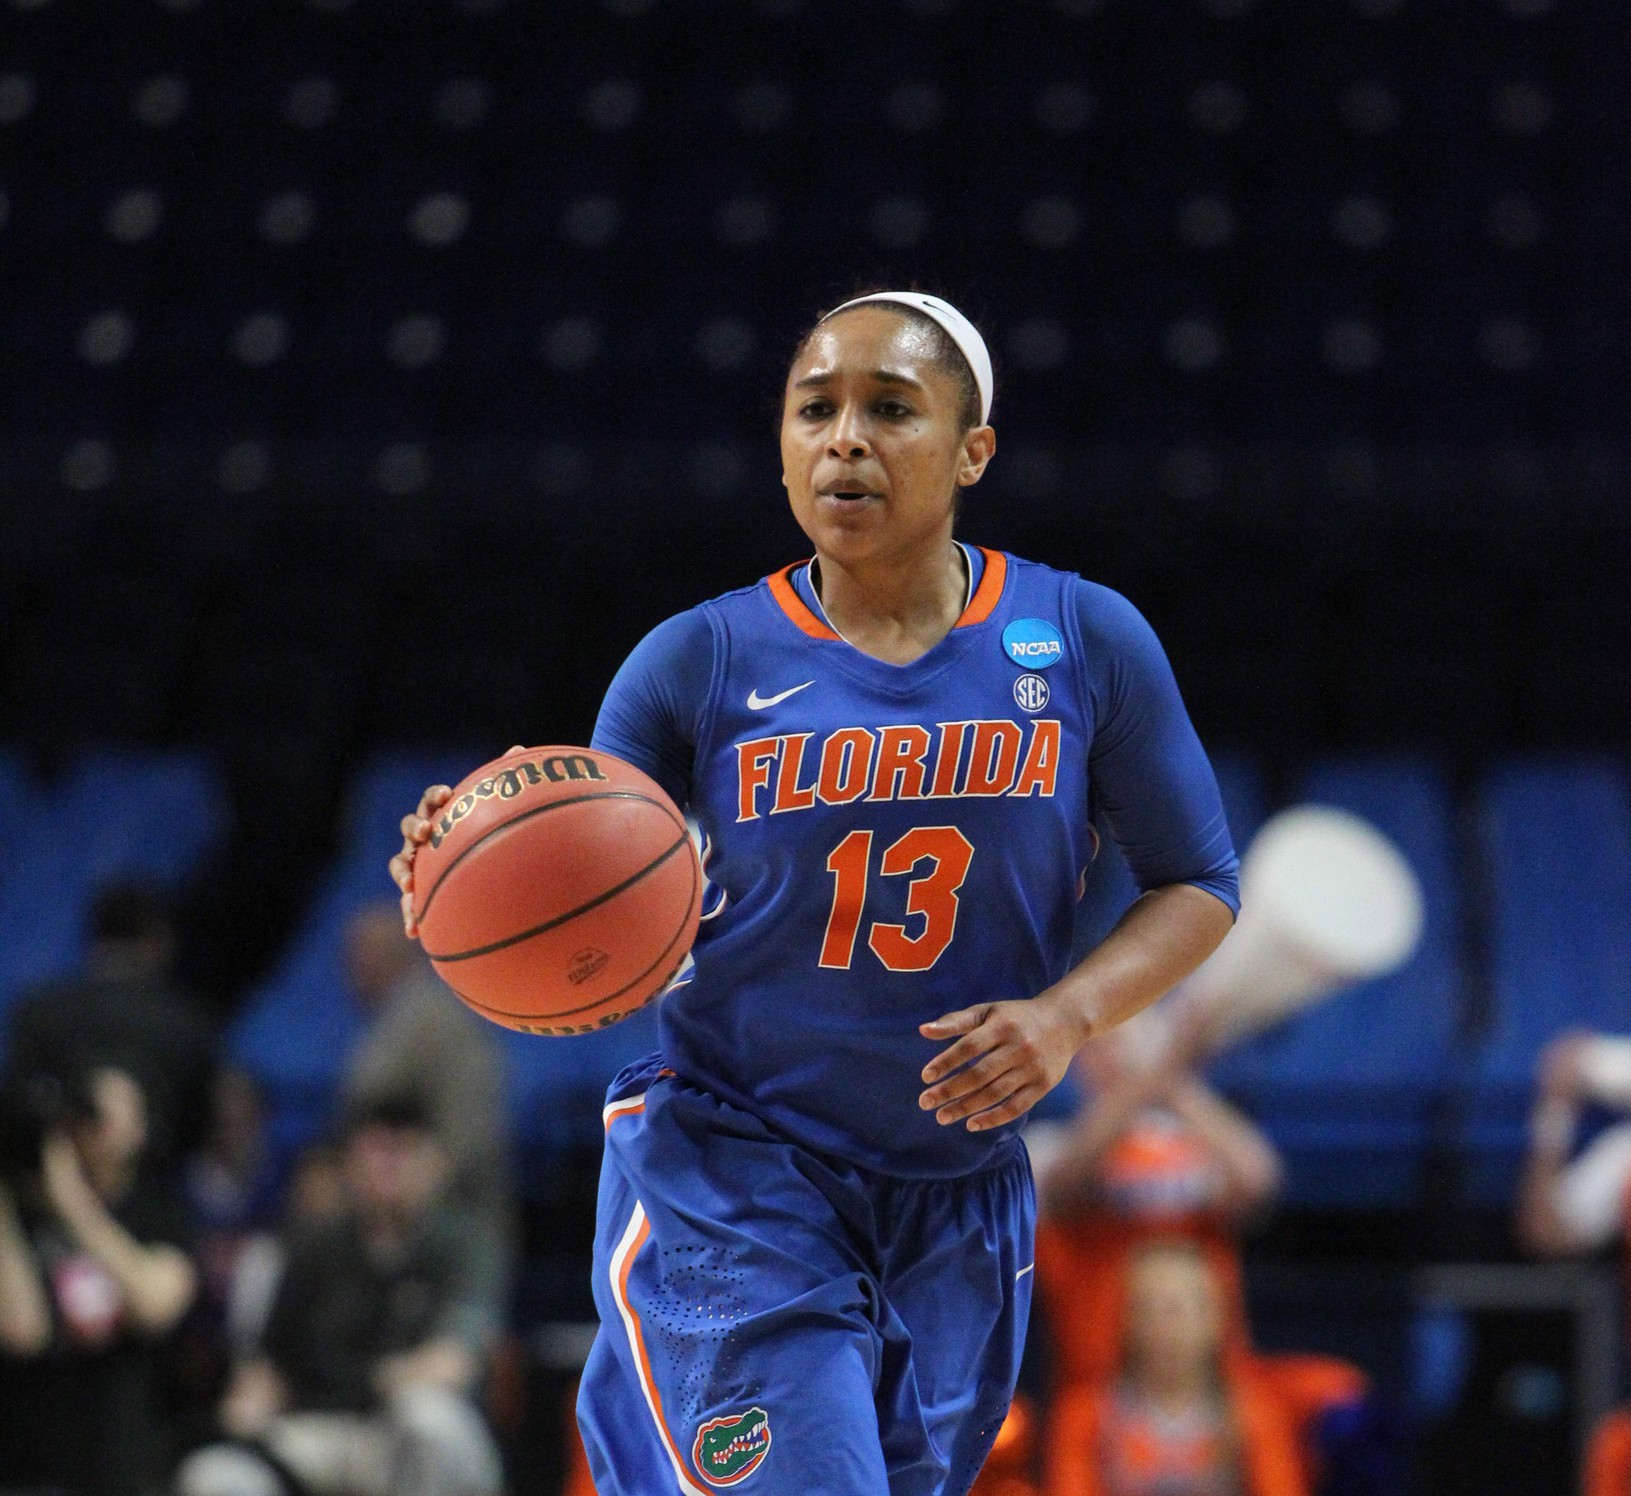 Gator Women's Basketball Team Loses To Temple In A Close ...